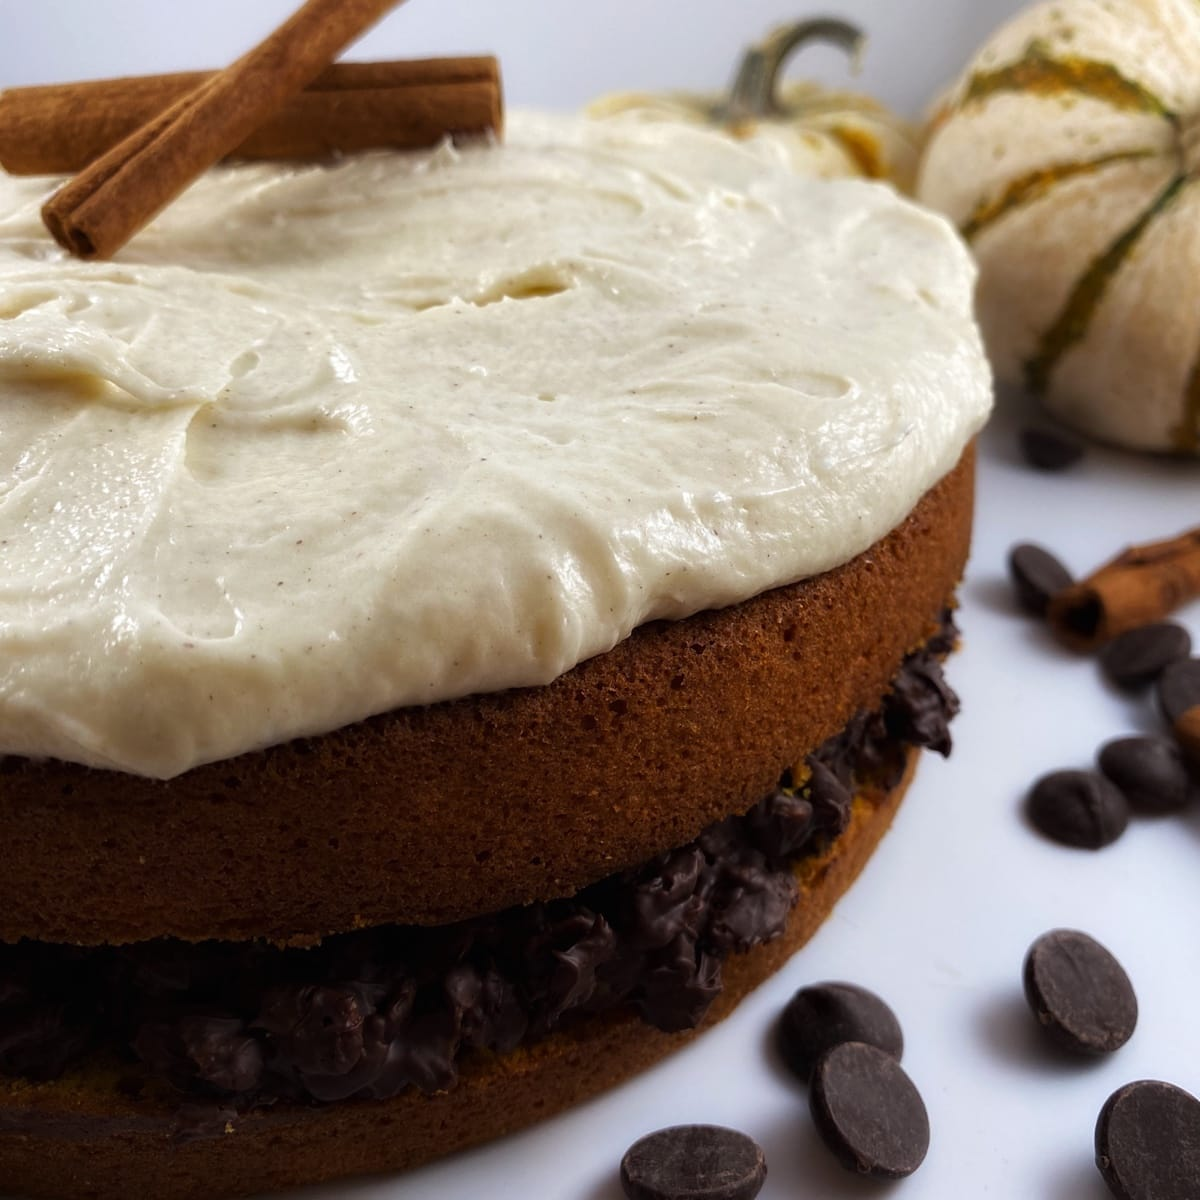 Pumpkin cake with pumpkin spice frosting and  a hazelnut crunch filling  that is garnished with cinnamon sticks and surrounded by pumpkins,  chocolate chips, and cinnamon sticks.